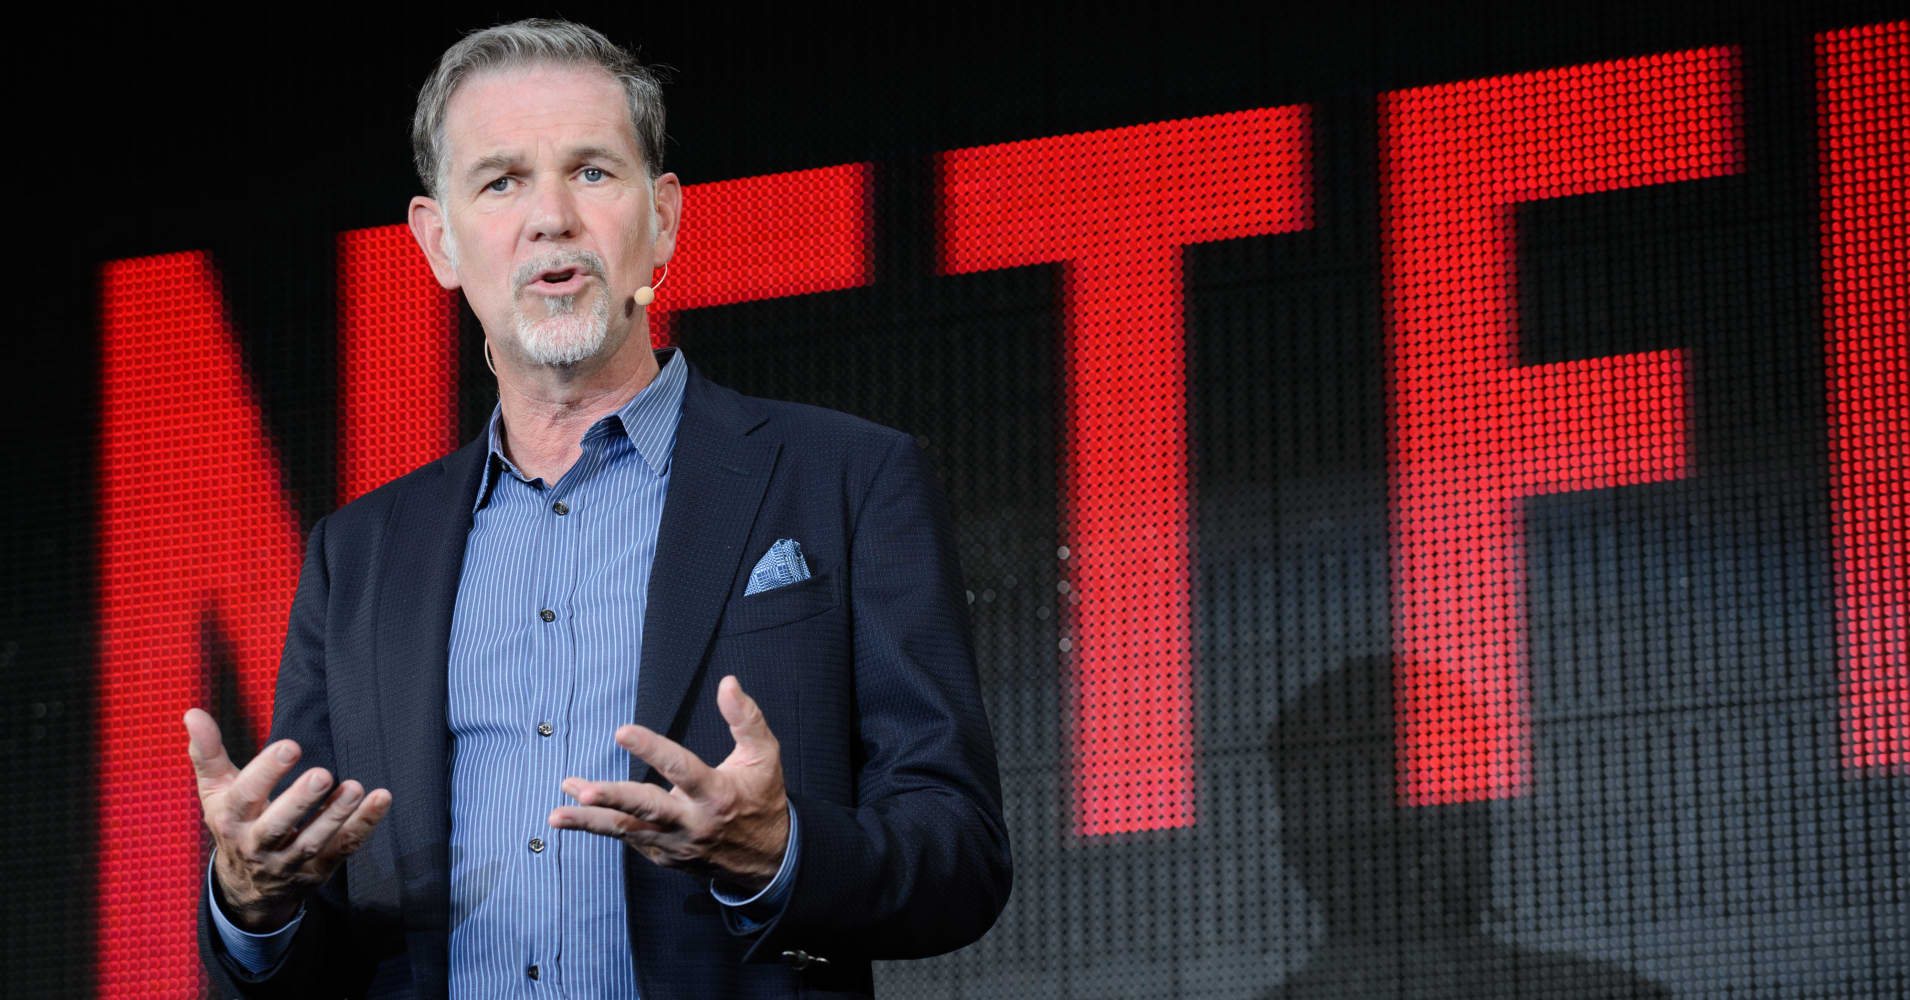 Netflix set to report earnings after the bell